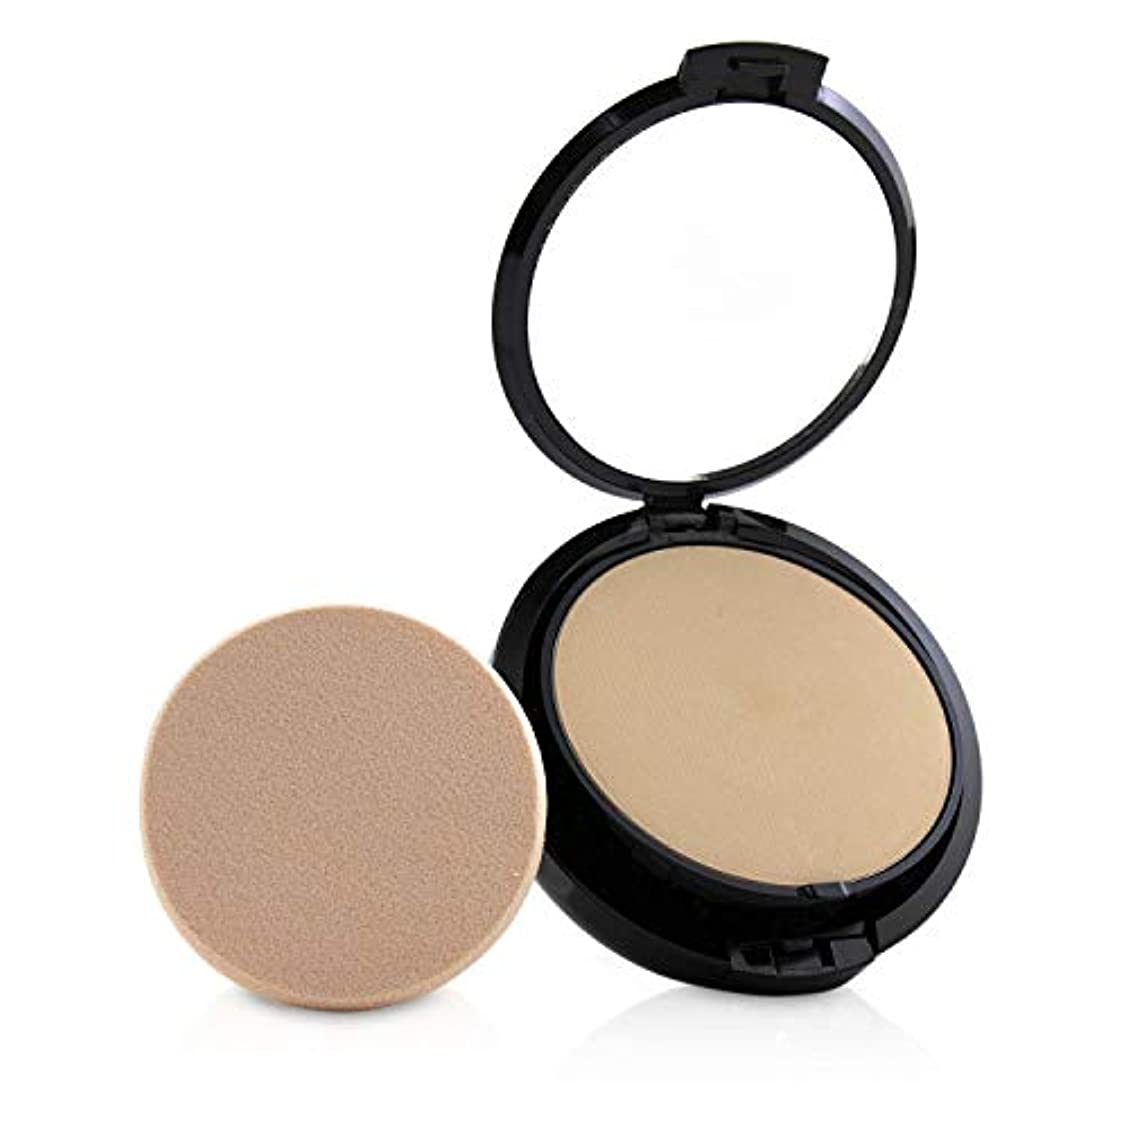 知覚する合図ギャングスターSCOUT Cosmetics Pressed Mineral Powder Foundation SPF 15 - # Shell 15g/0.53oz並行輸入品